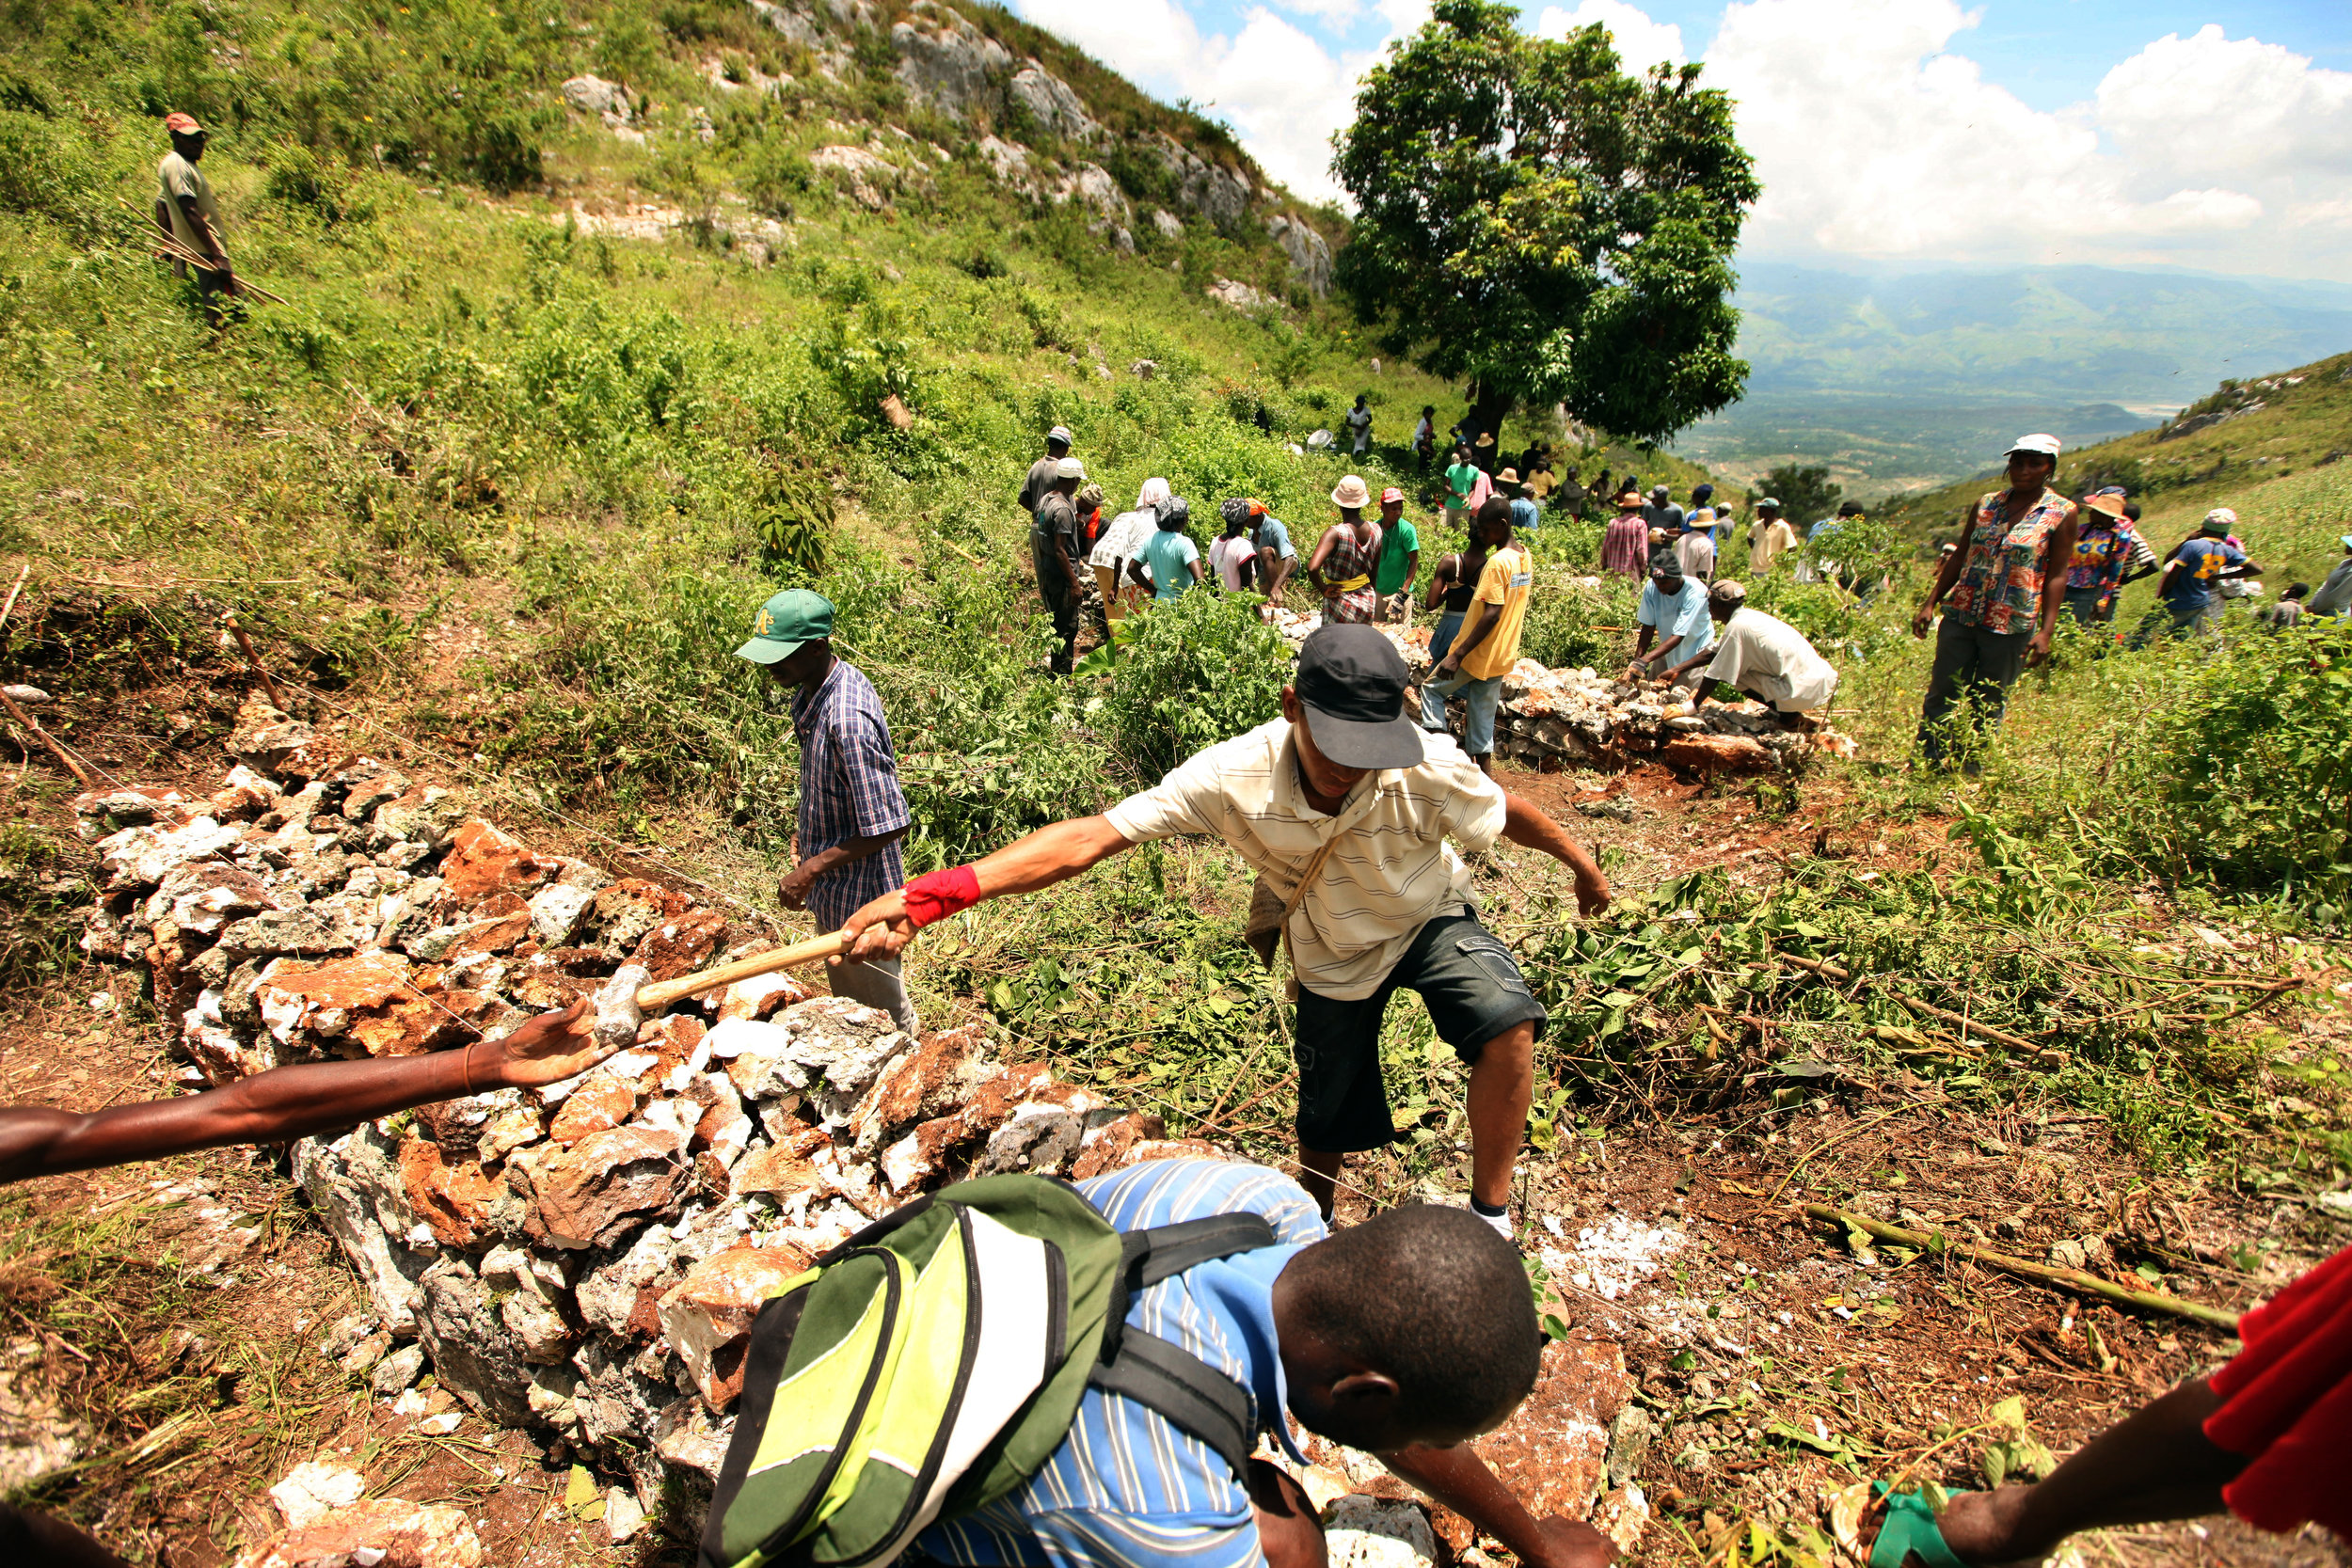 The Desarmes Development Organization partnered with MCC to construct stone retaining walls that will conserve soil and protect the water supply of Desarmes, the town below.